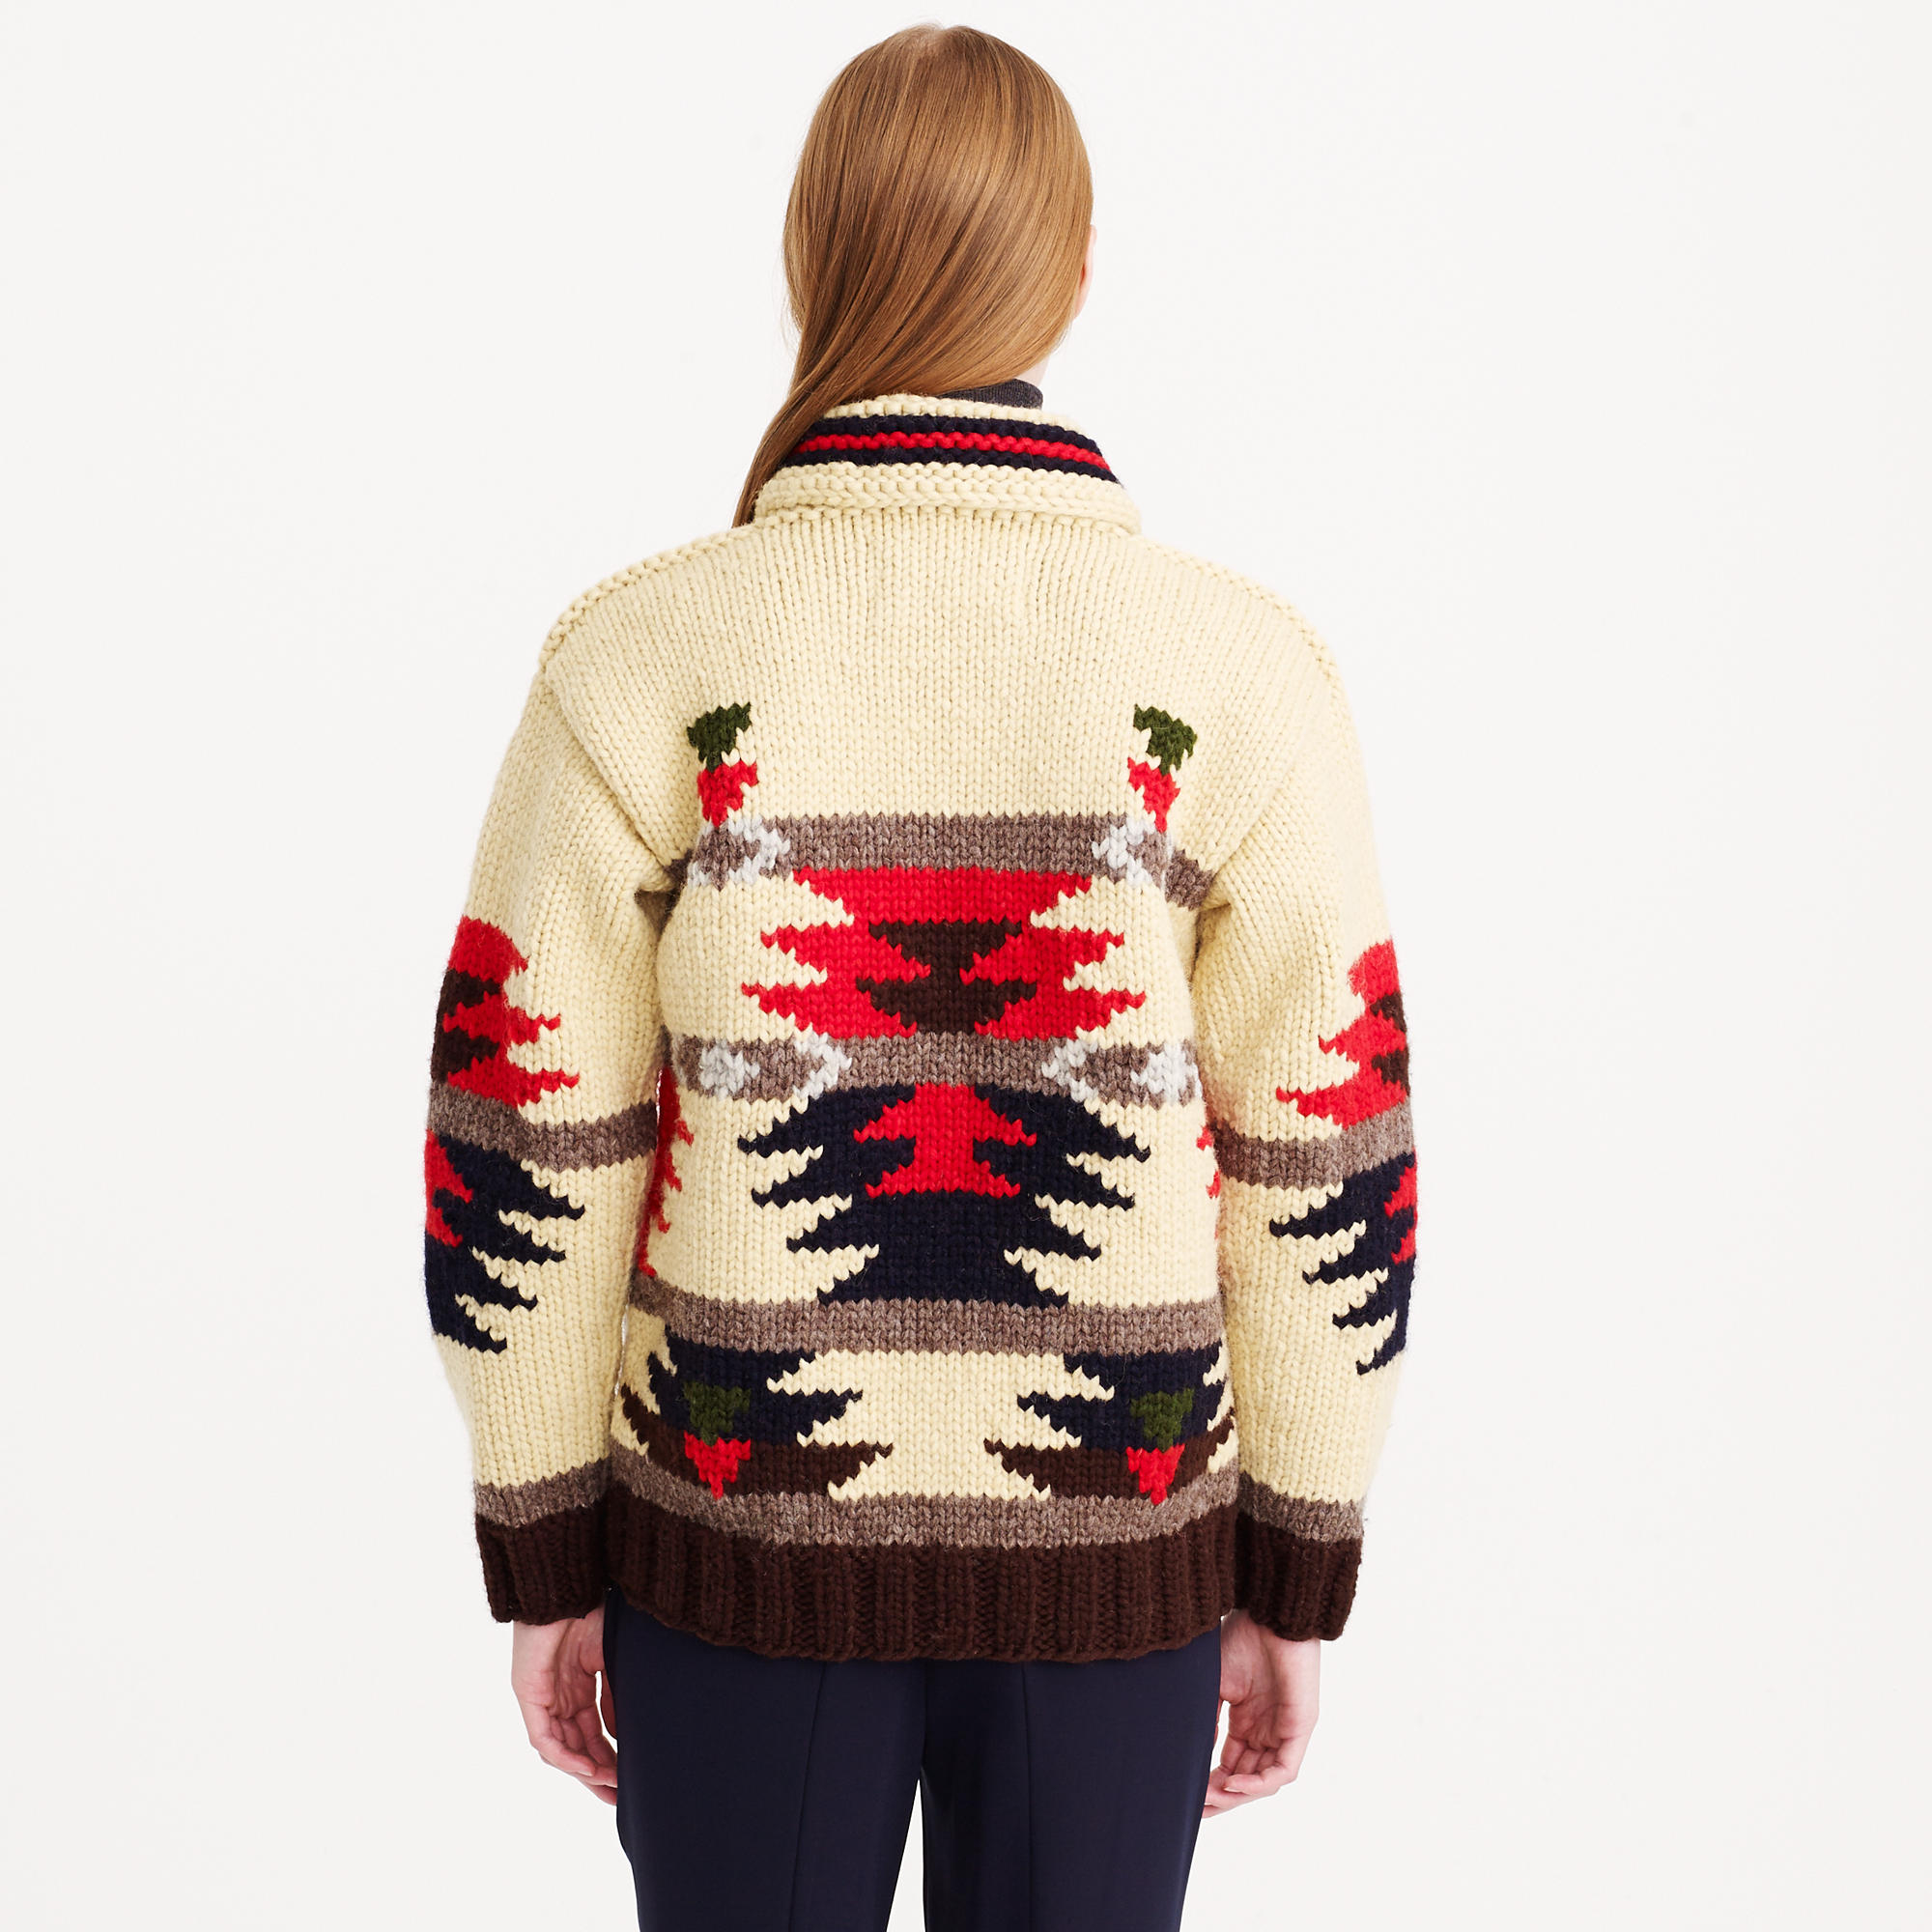 67639b24bb J.Crew Canadian Sweater Company™ Cardigan Sweater in Natural - Lyst